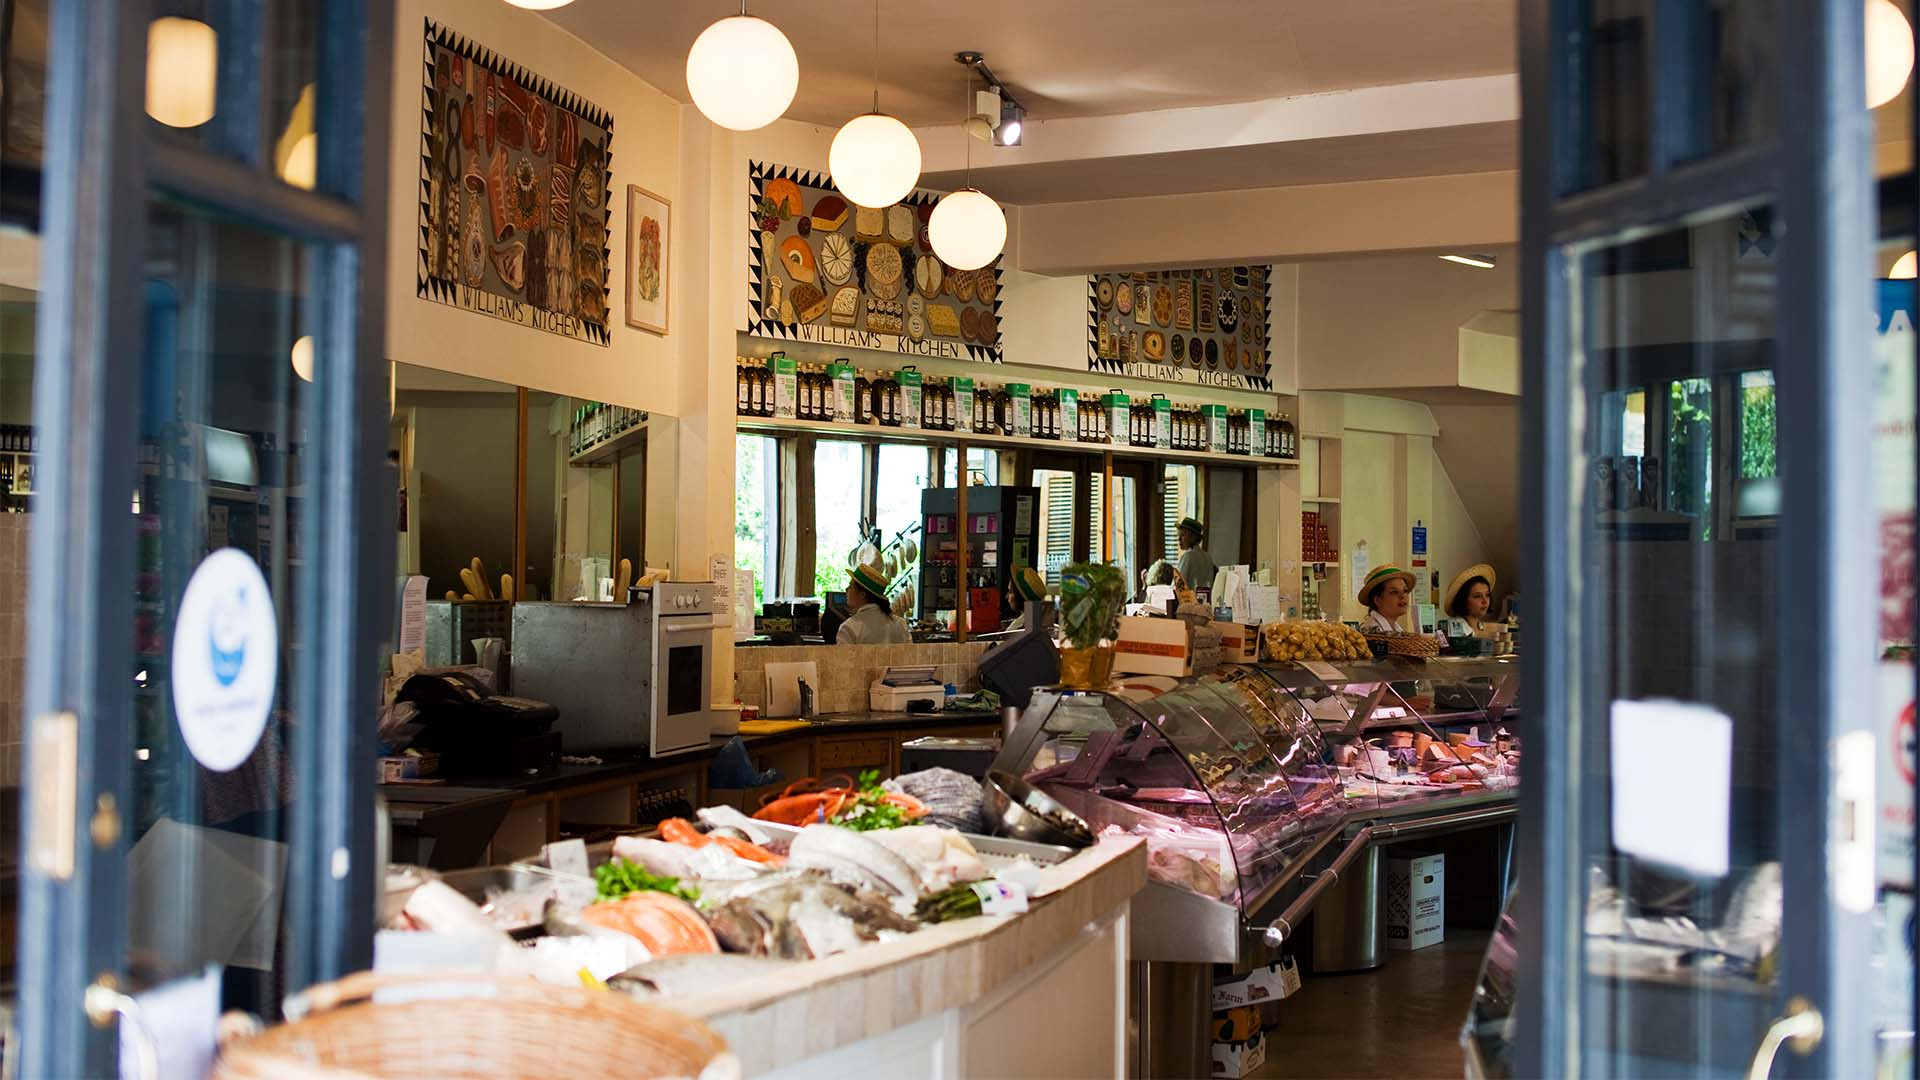 William's Food Hall in Nailsworth, the Cotswolds